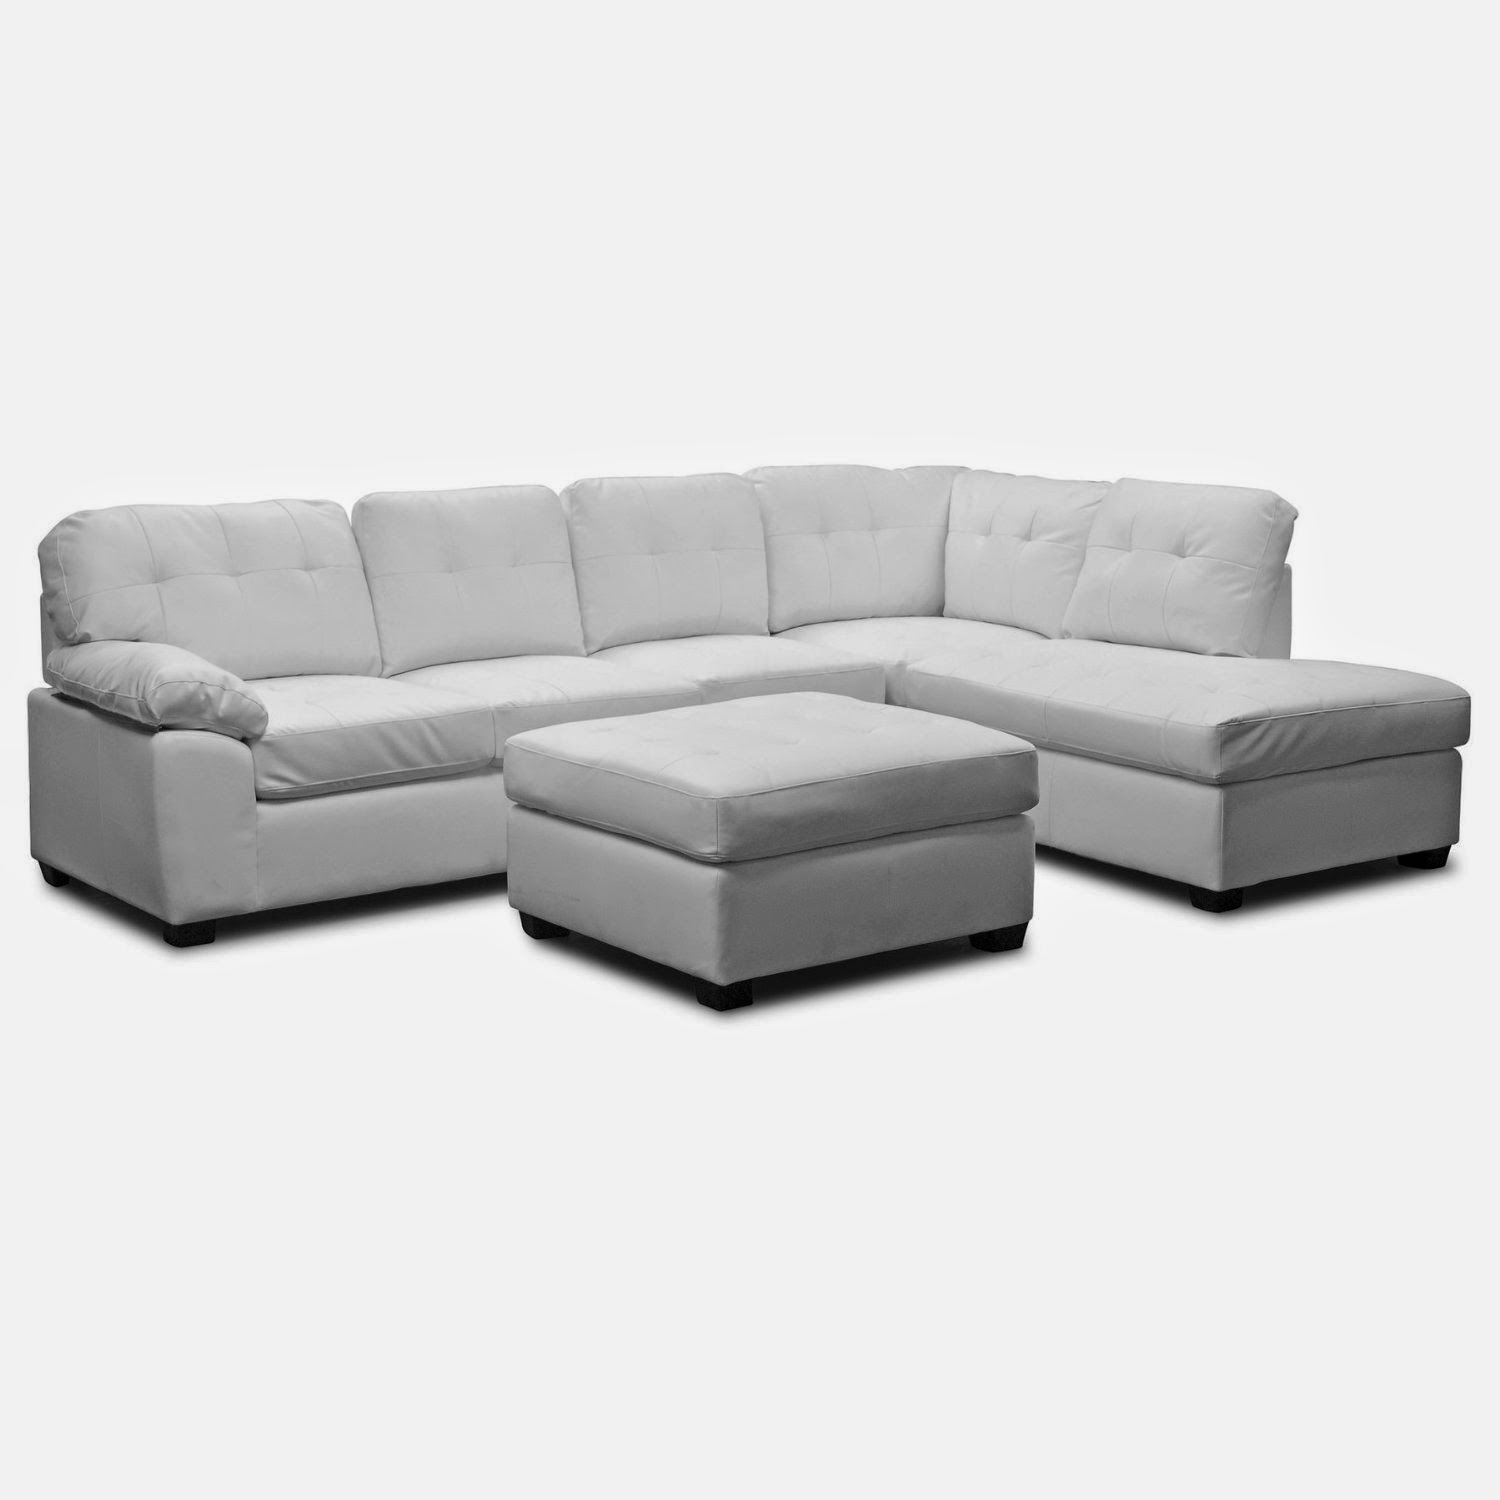 Oversized Couches Oversized Sectional Couches